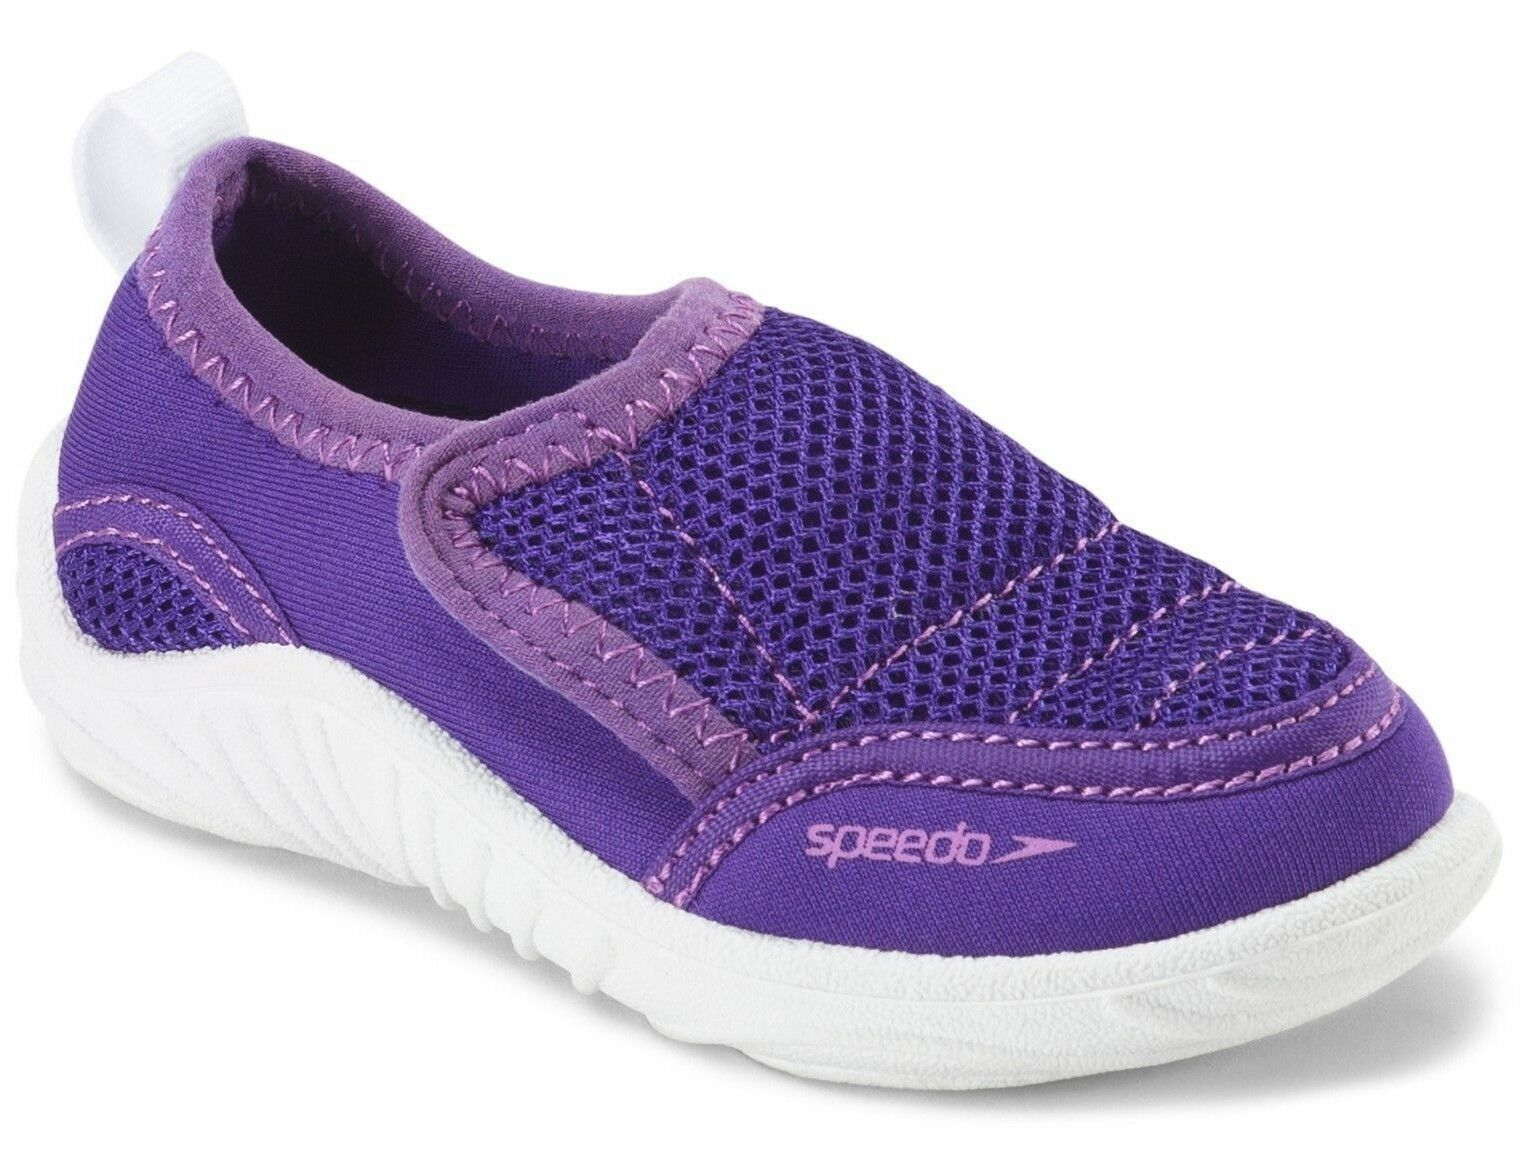 NEW Speedo Kids Toddler Boys Girls Purple Surfwalker Beach Pool Water Shoes NWT